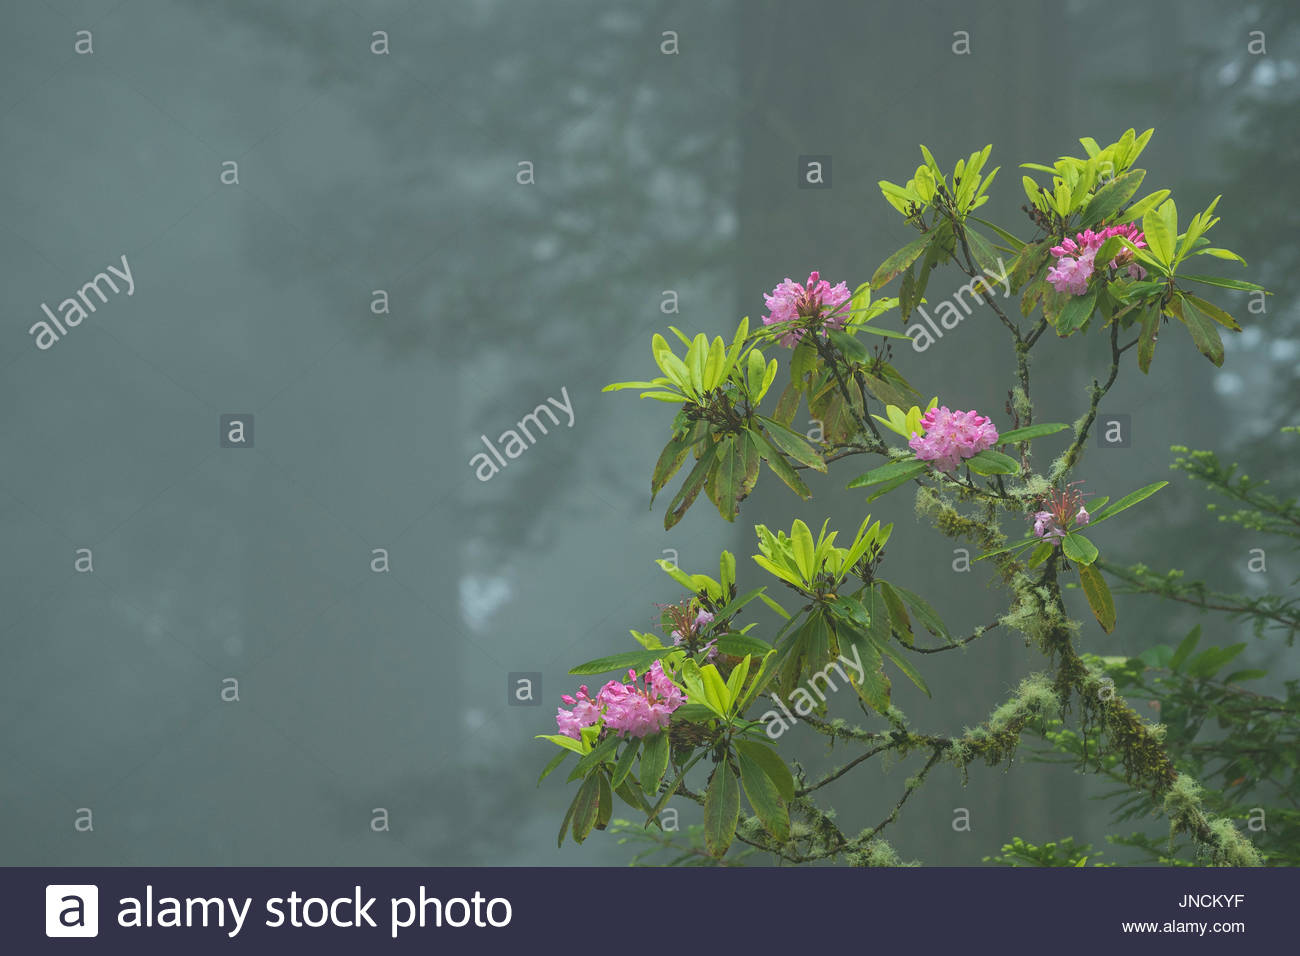 Rhododendron blooming in the fog, Del Norte Redwoods State Park, Redwoods State and National Parks, California. - Stock Image